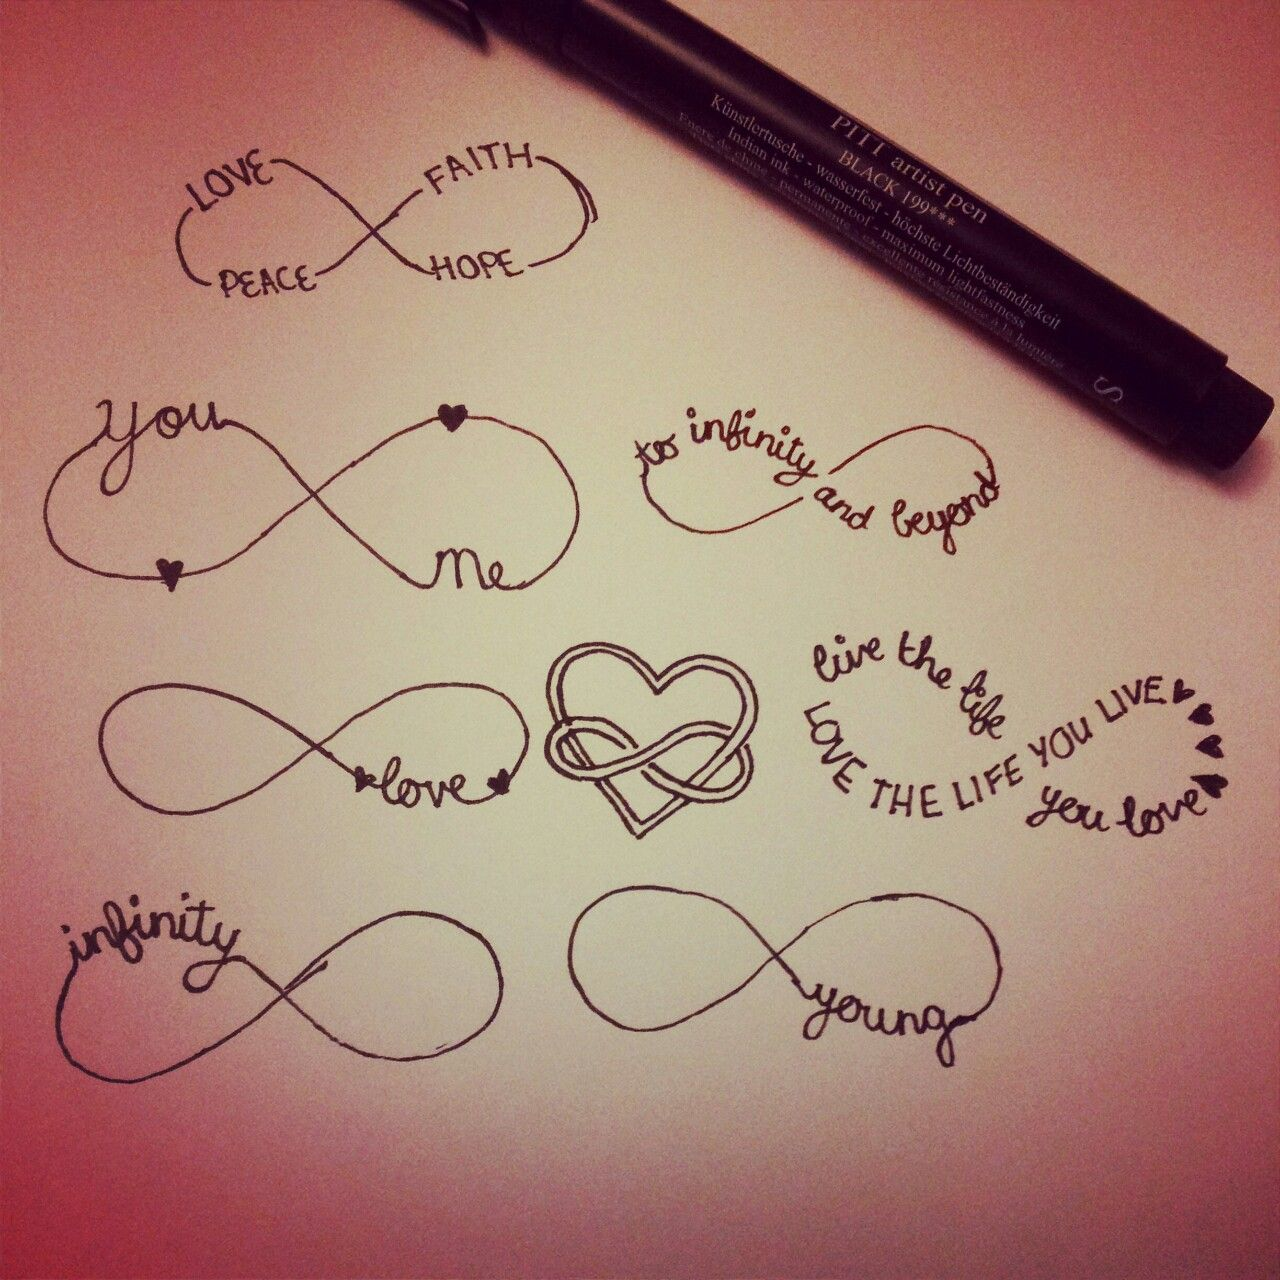 Infinity Tattoos I Want It To Look Like A Ropelasso With Wyatts